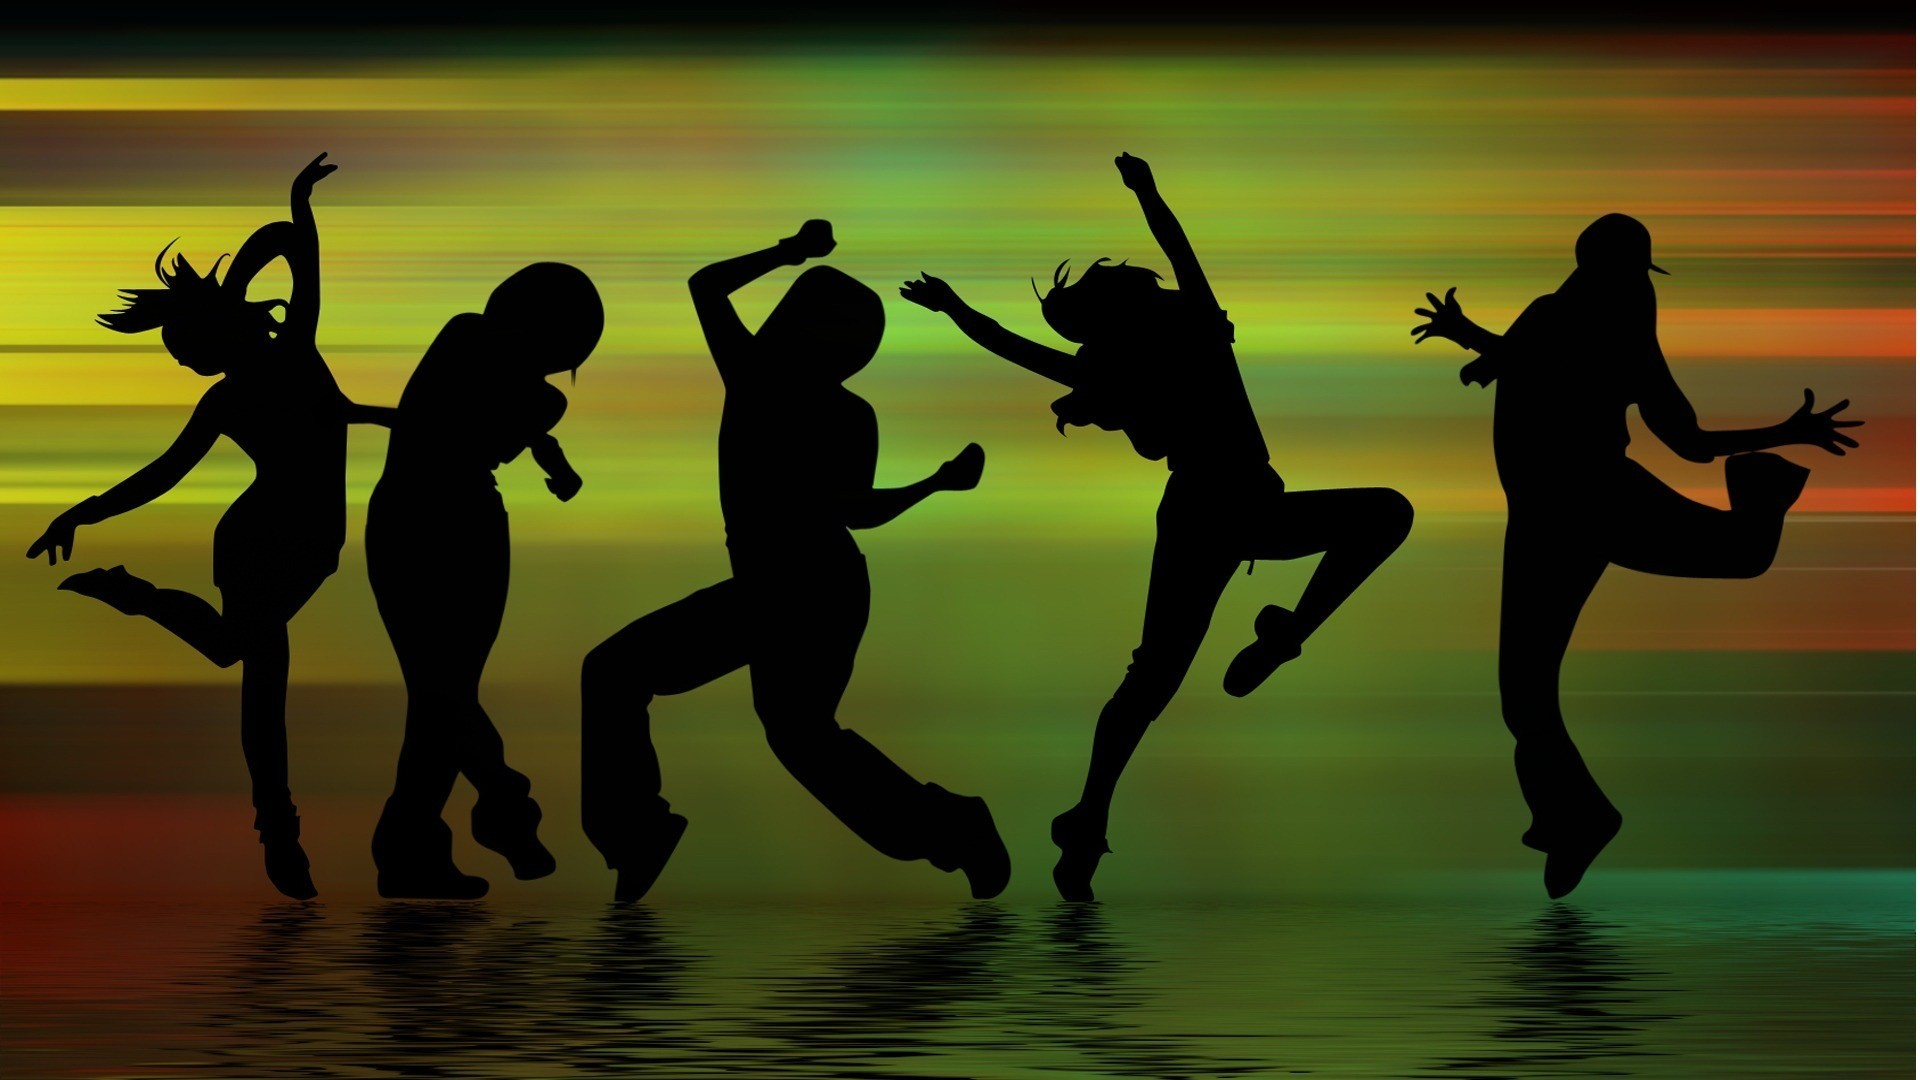 Download wallpaper music, dancing, Silhouettes, figures free desktop  wallpaper in the resolution 1920×1080